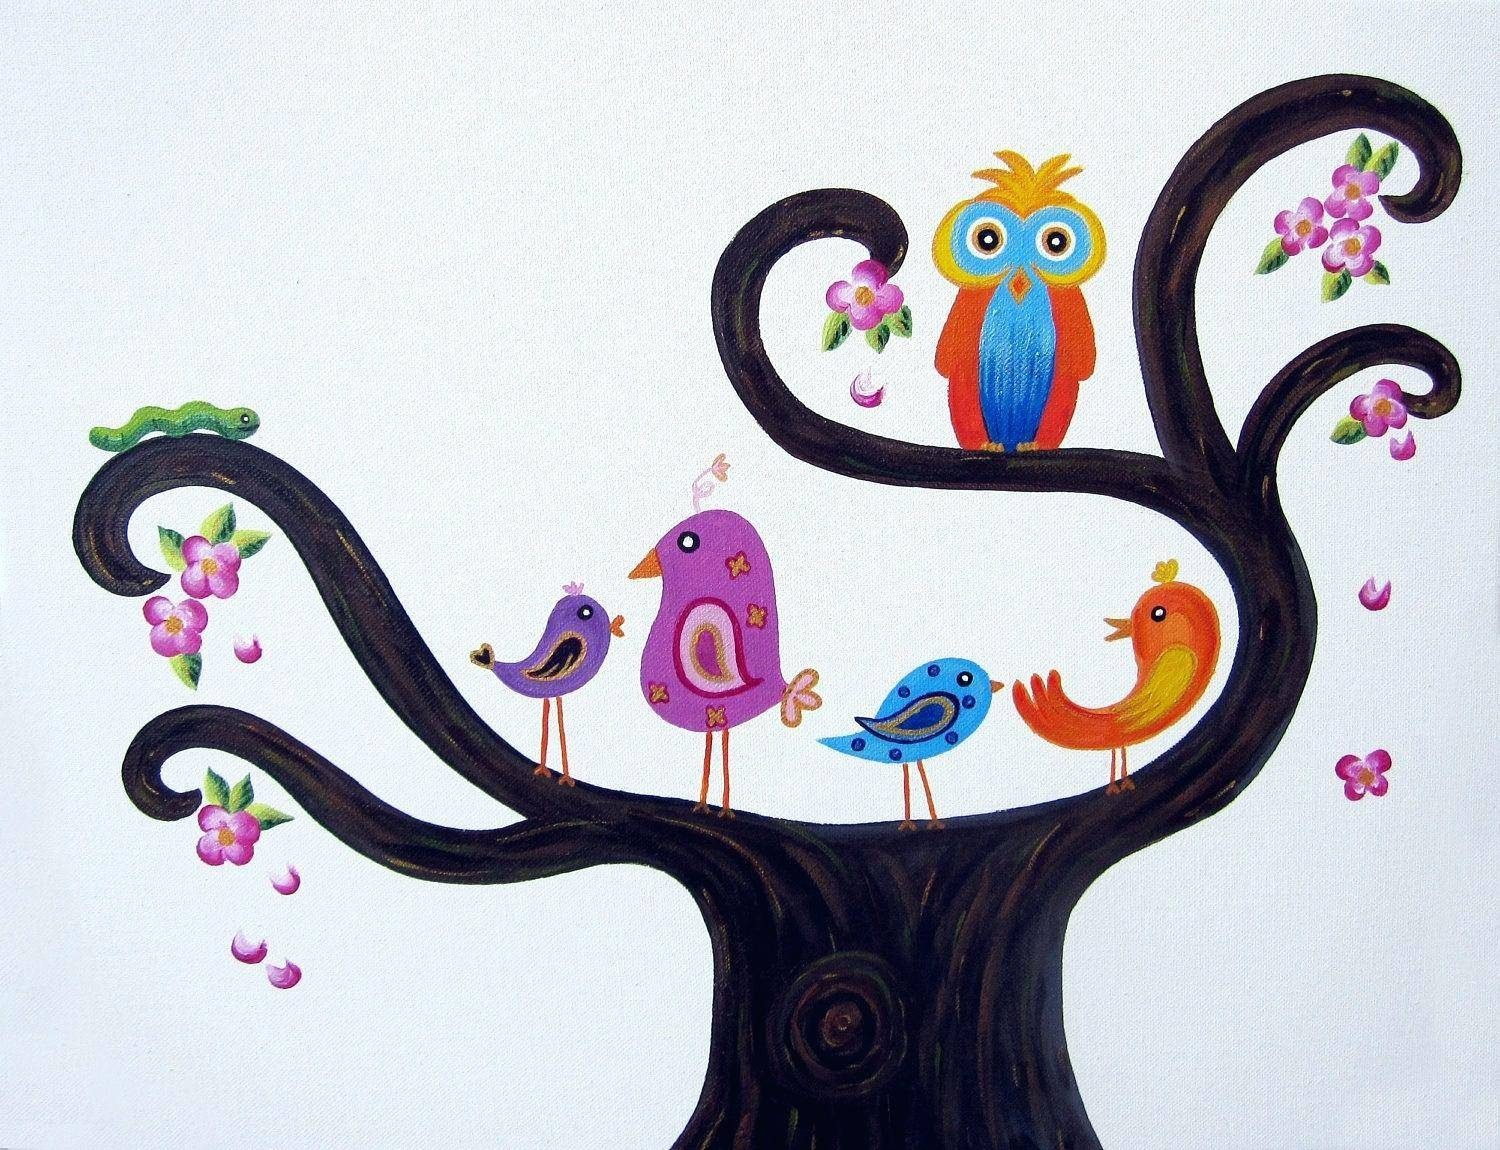 Wall Decor : Outdoor Wall Decor Birds 3D Wall Art Birds 3D Il Intended For Current Baby Nursery 3D Wall Art (View 19 of 20)